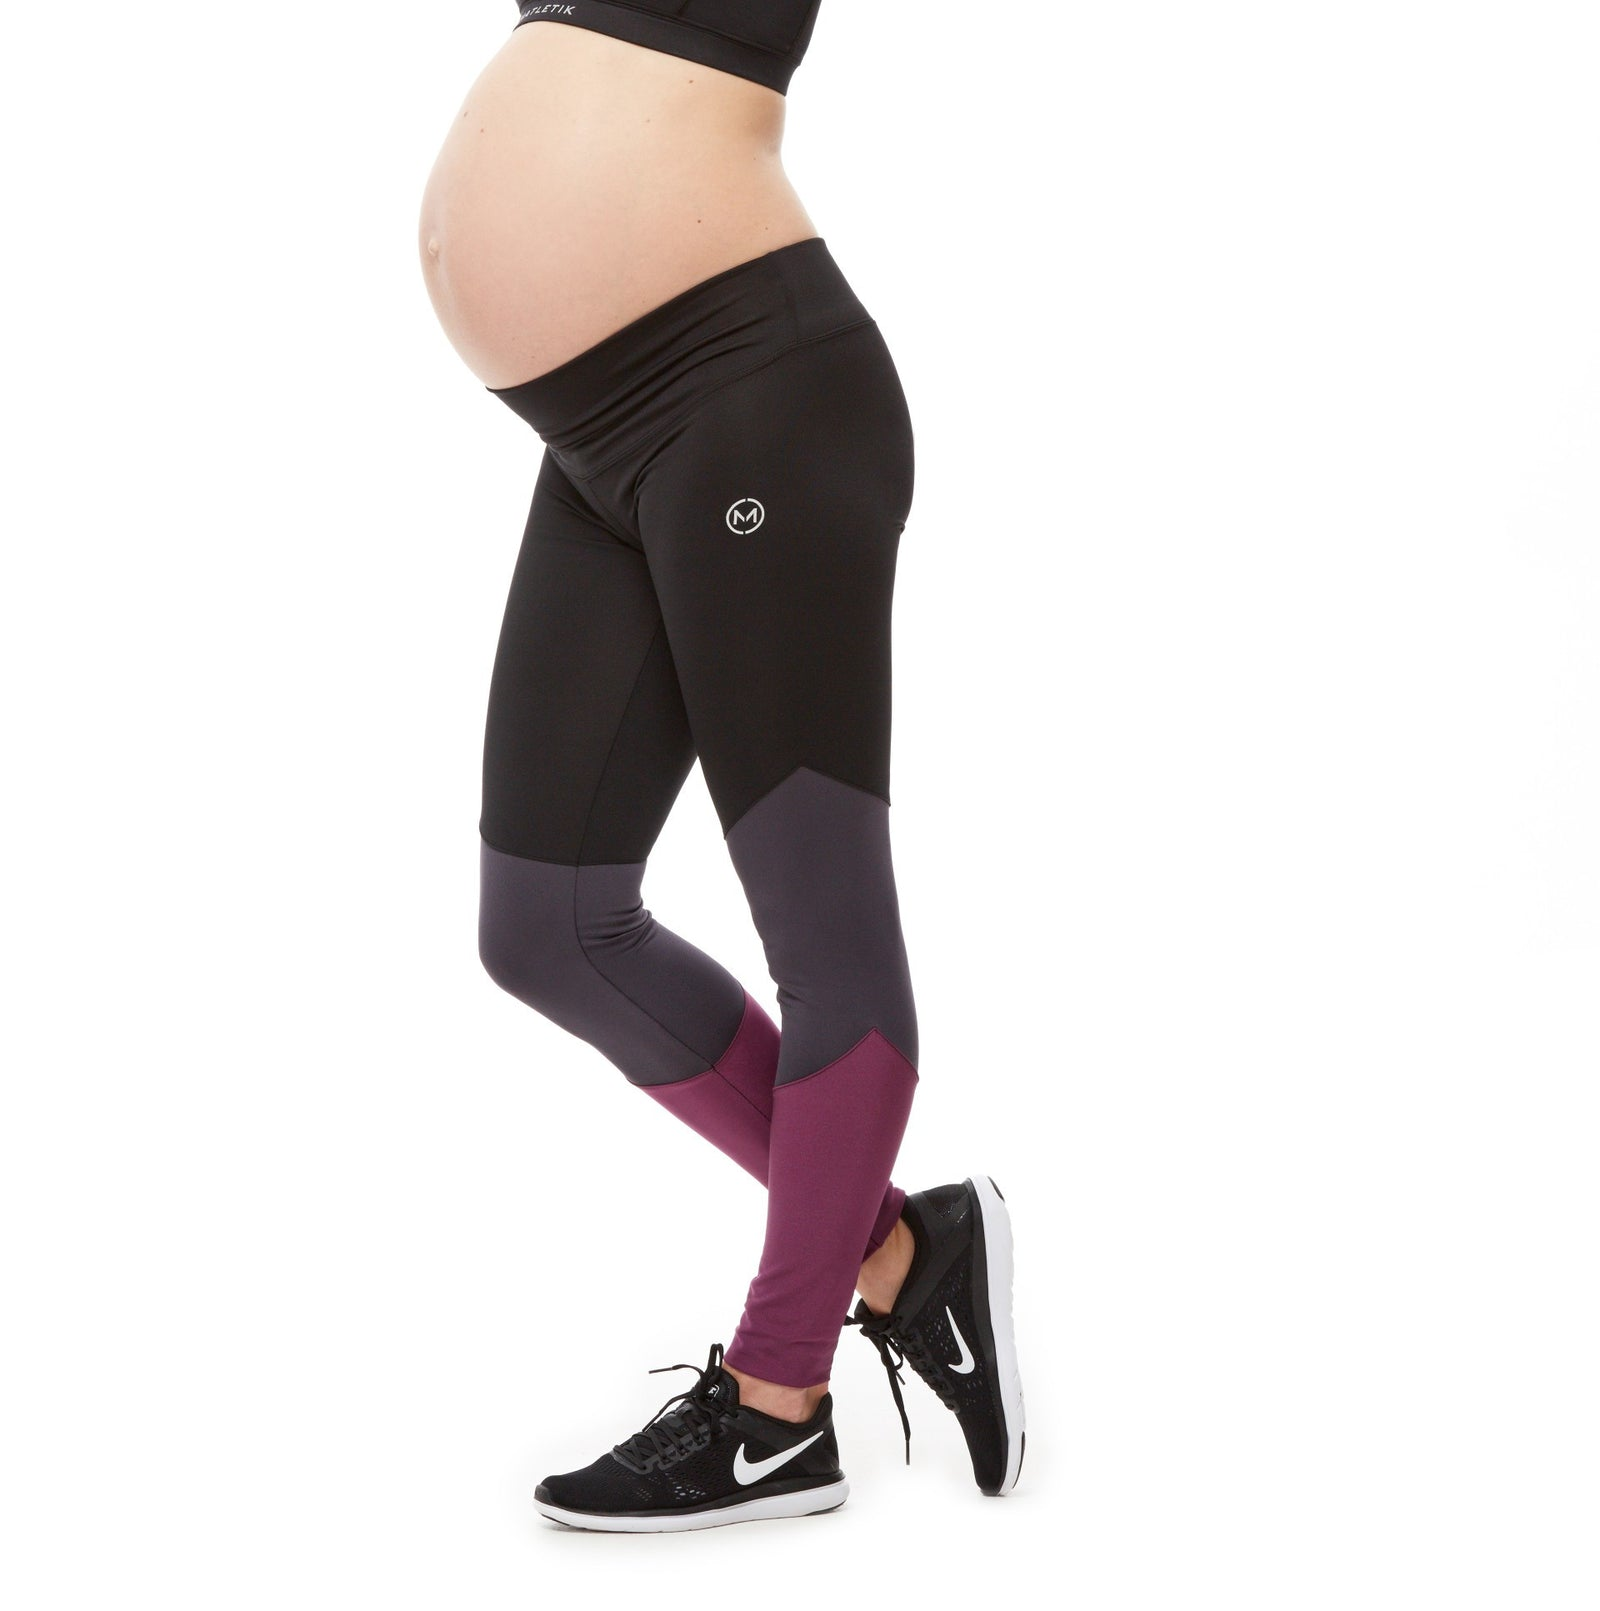 BALANCE LEGGING - Active full length colorblock with mid waist